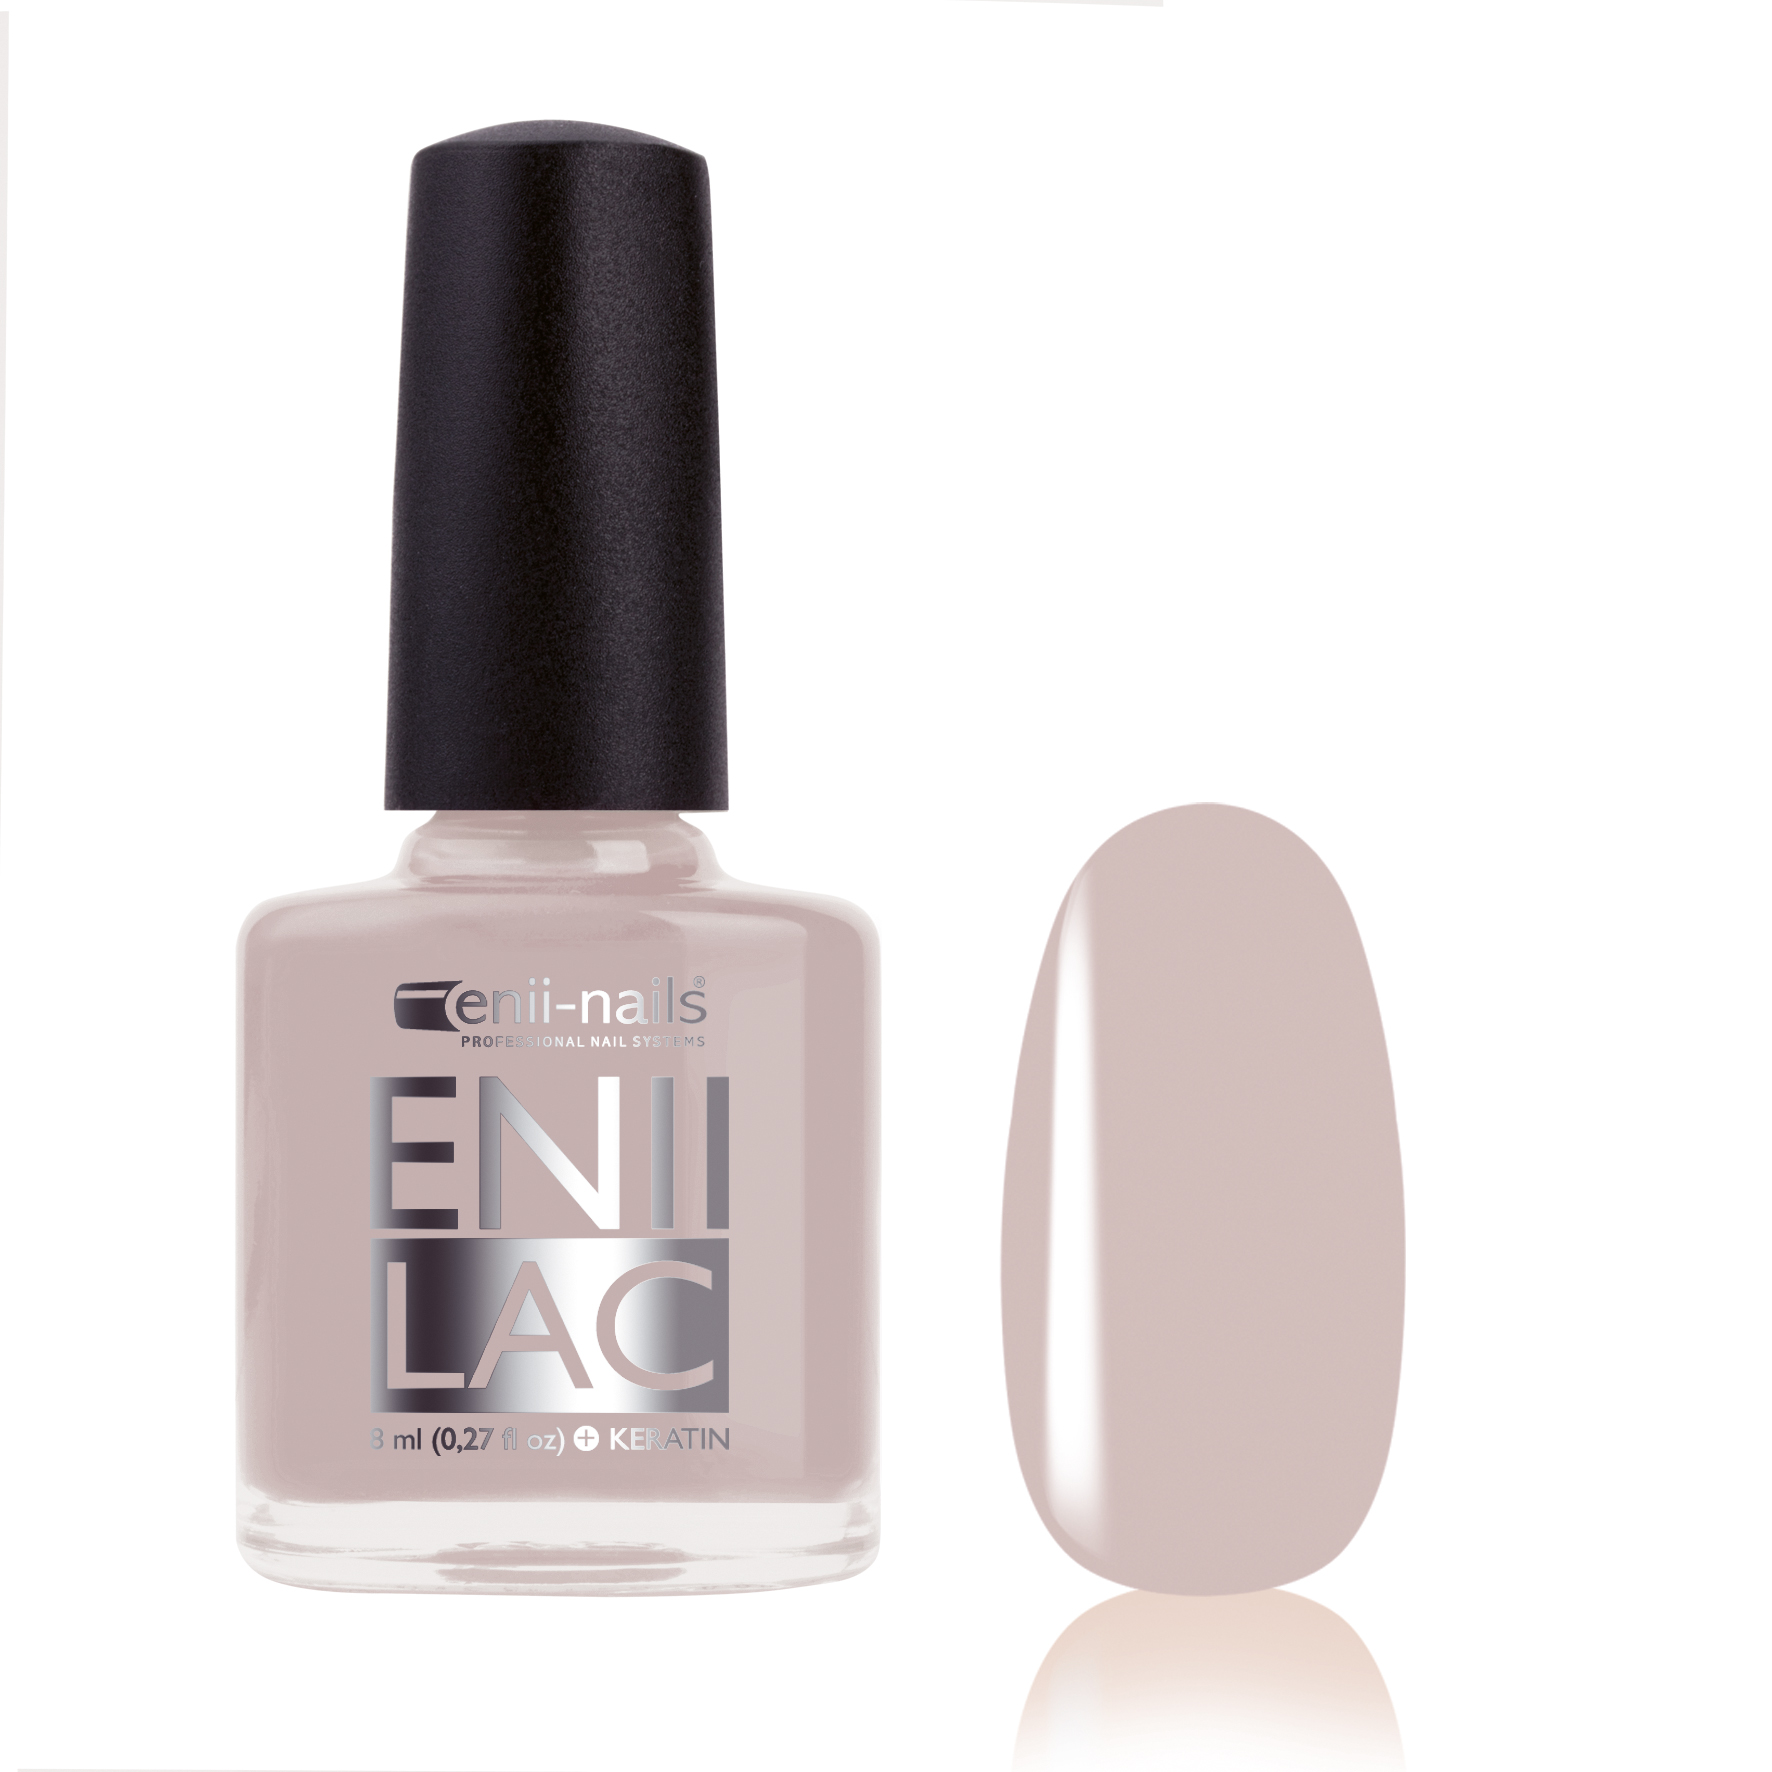 ENII-NAILS ENII LAC 8 ml - Make-up